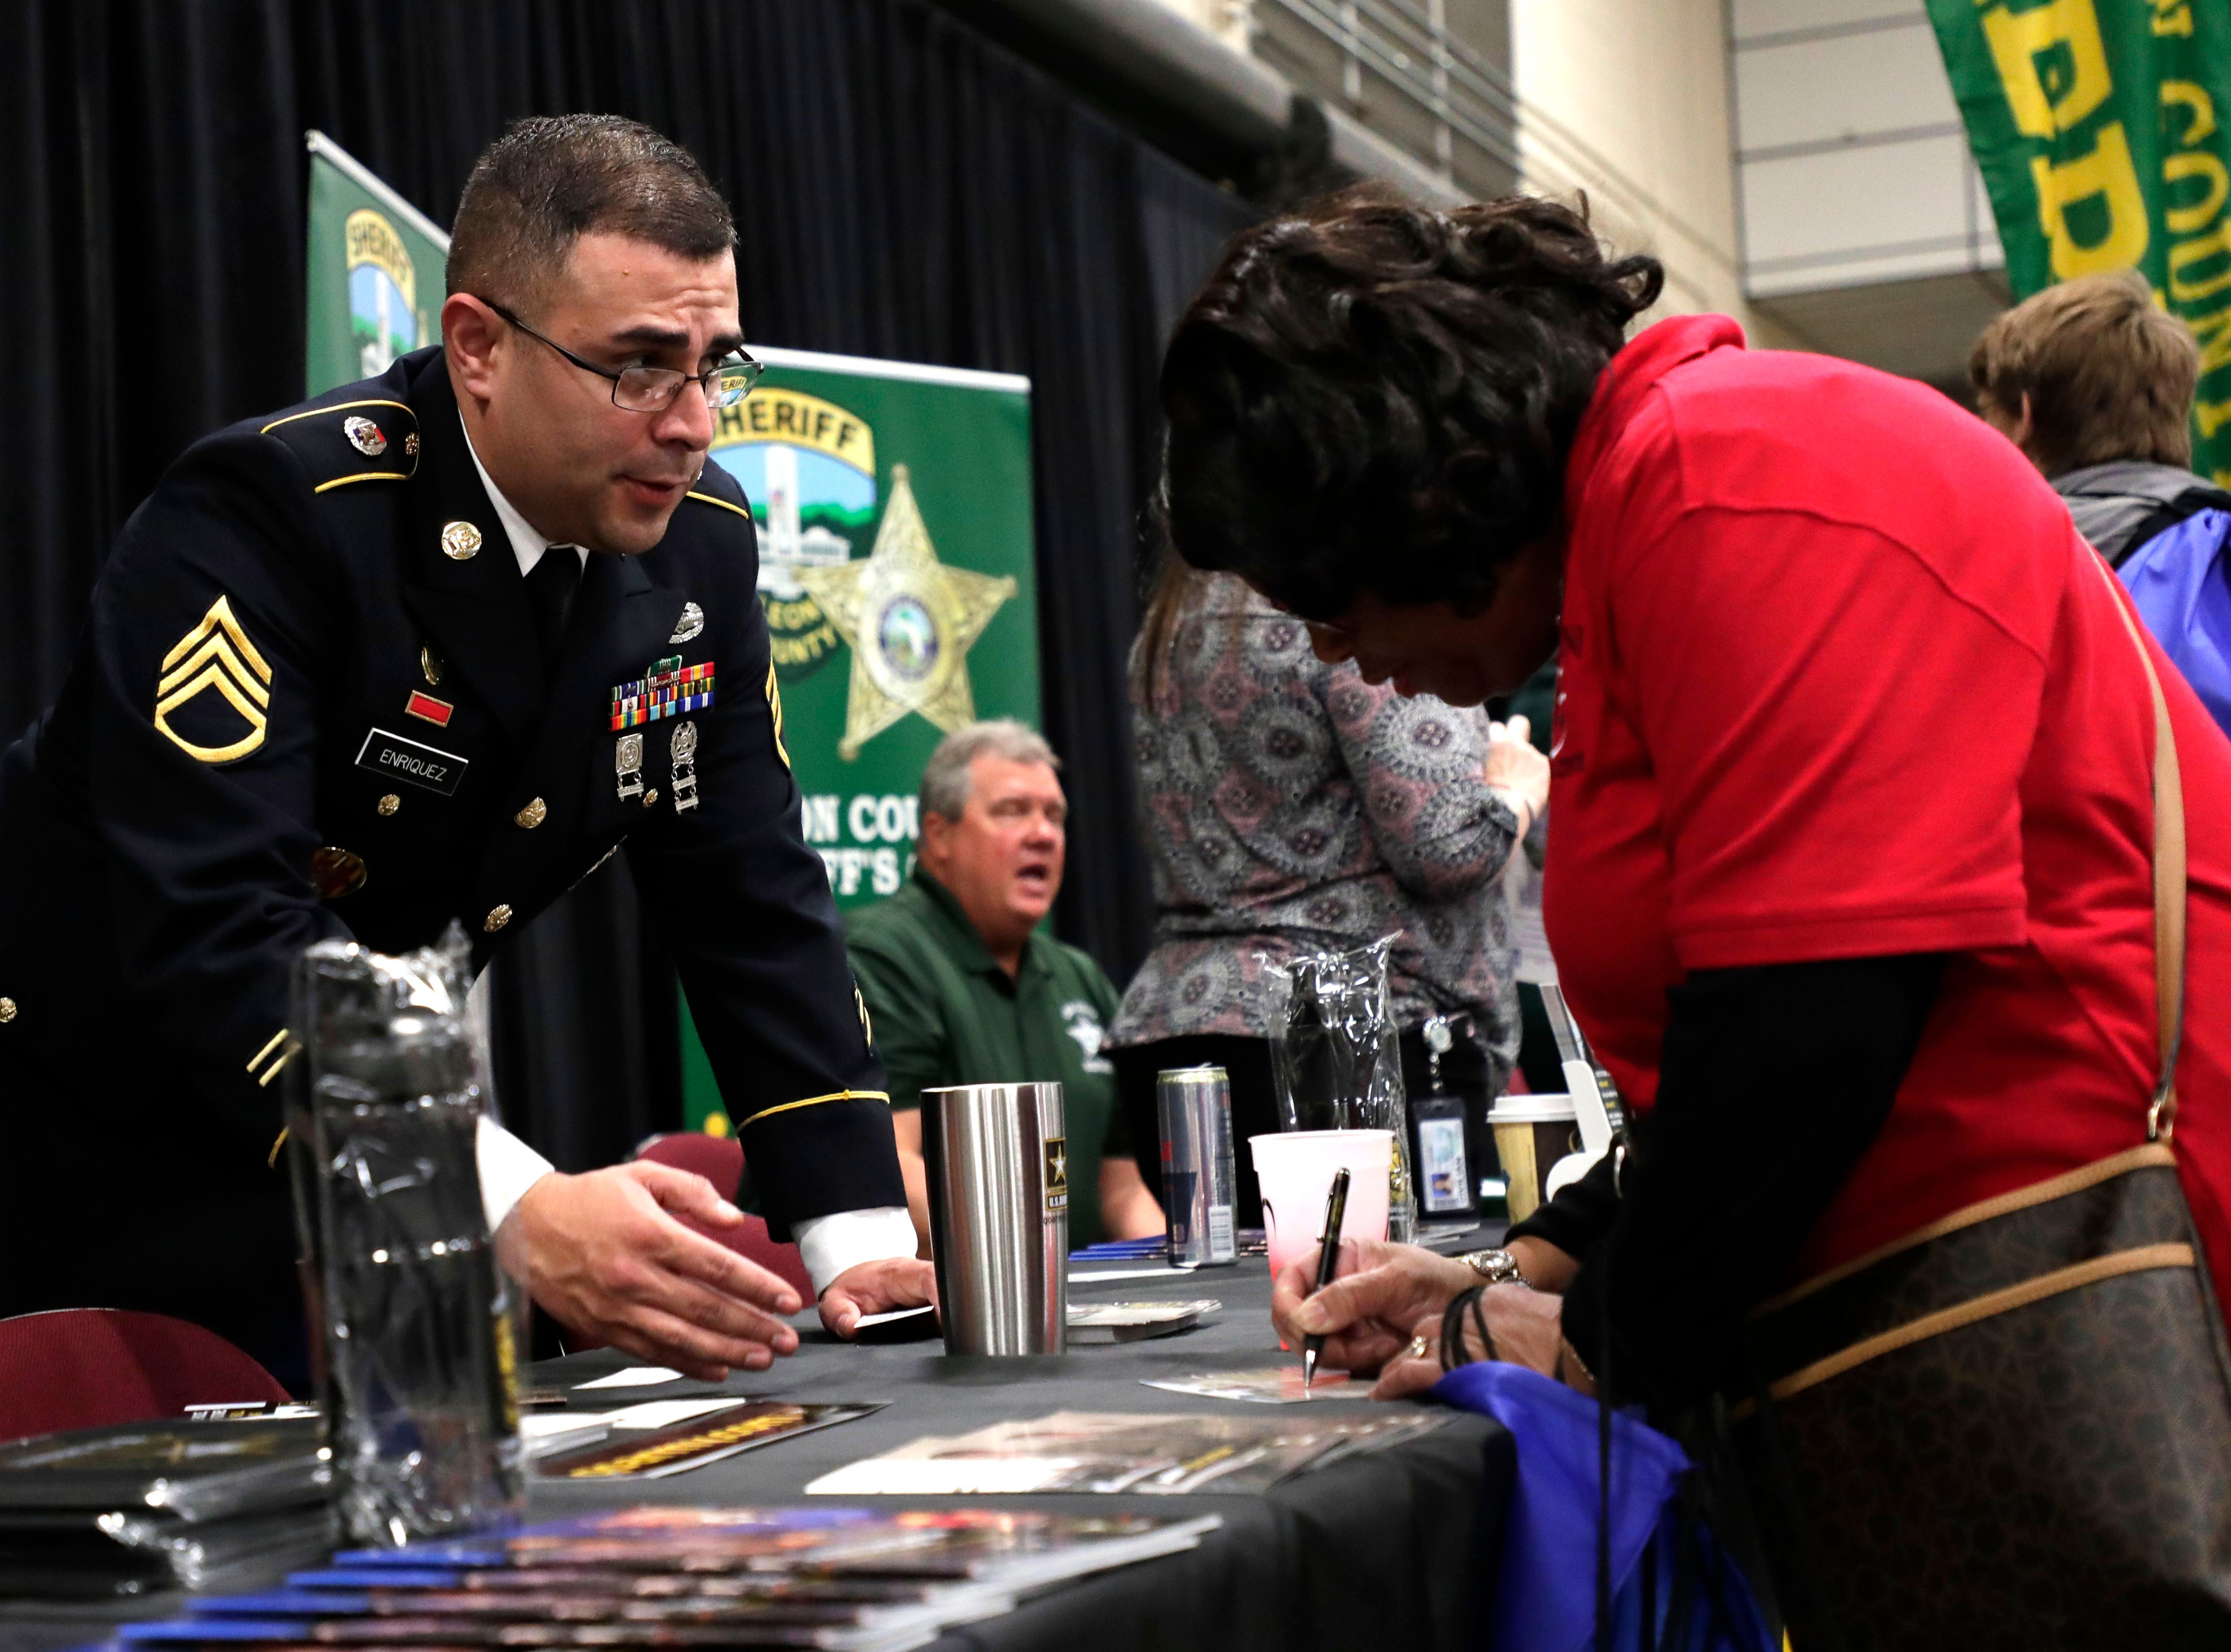 Staff Sergeant Eneiquwz, an army recruiter, left, talks to Patricia Zackery about a future in the army. High school students throughout Leon County attended the Leon Works Expo at the Tucker Civic Center Friday March 8, 2019.